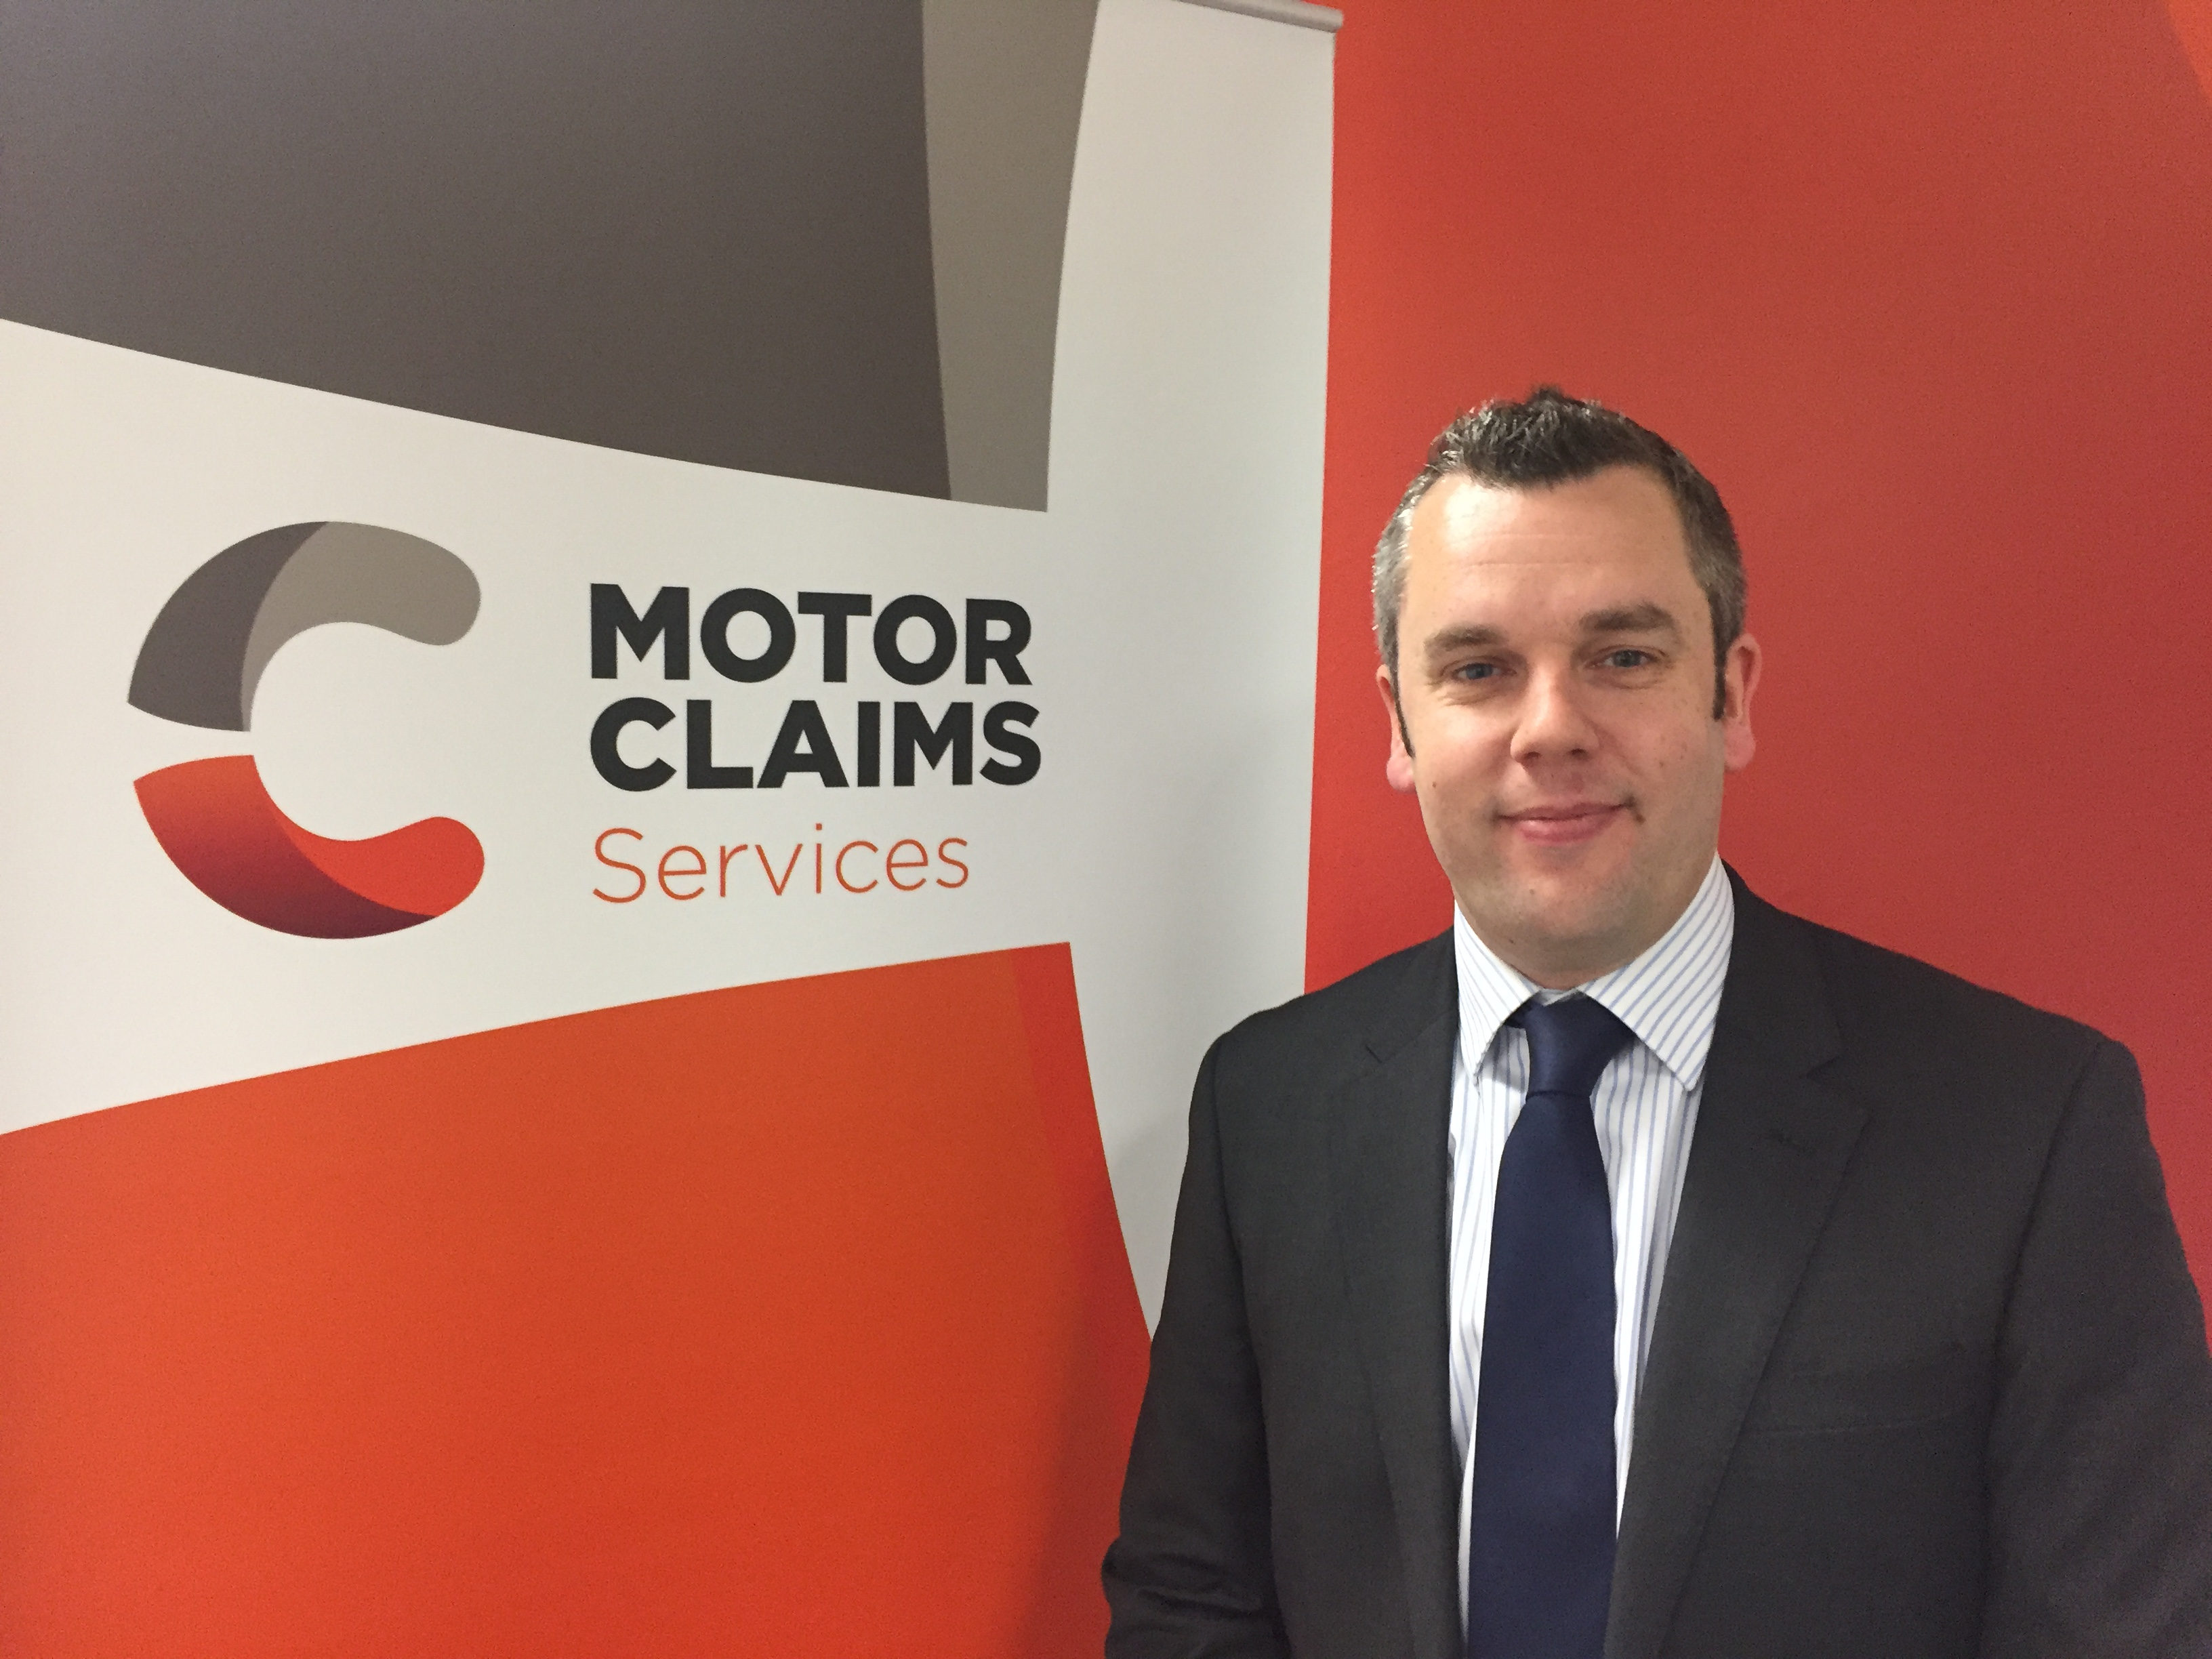 otor claims services appointment